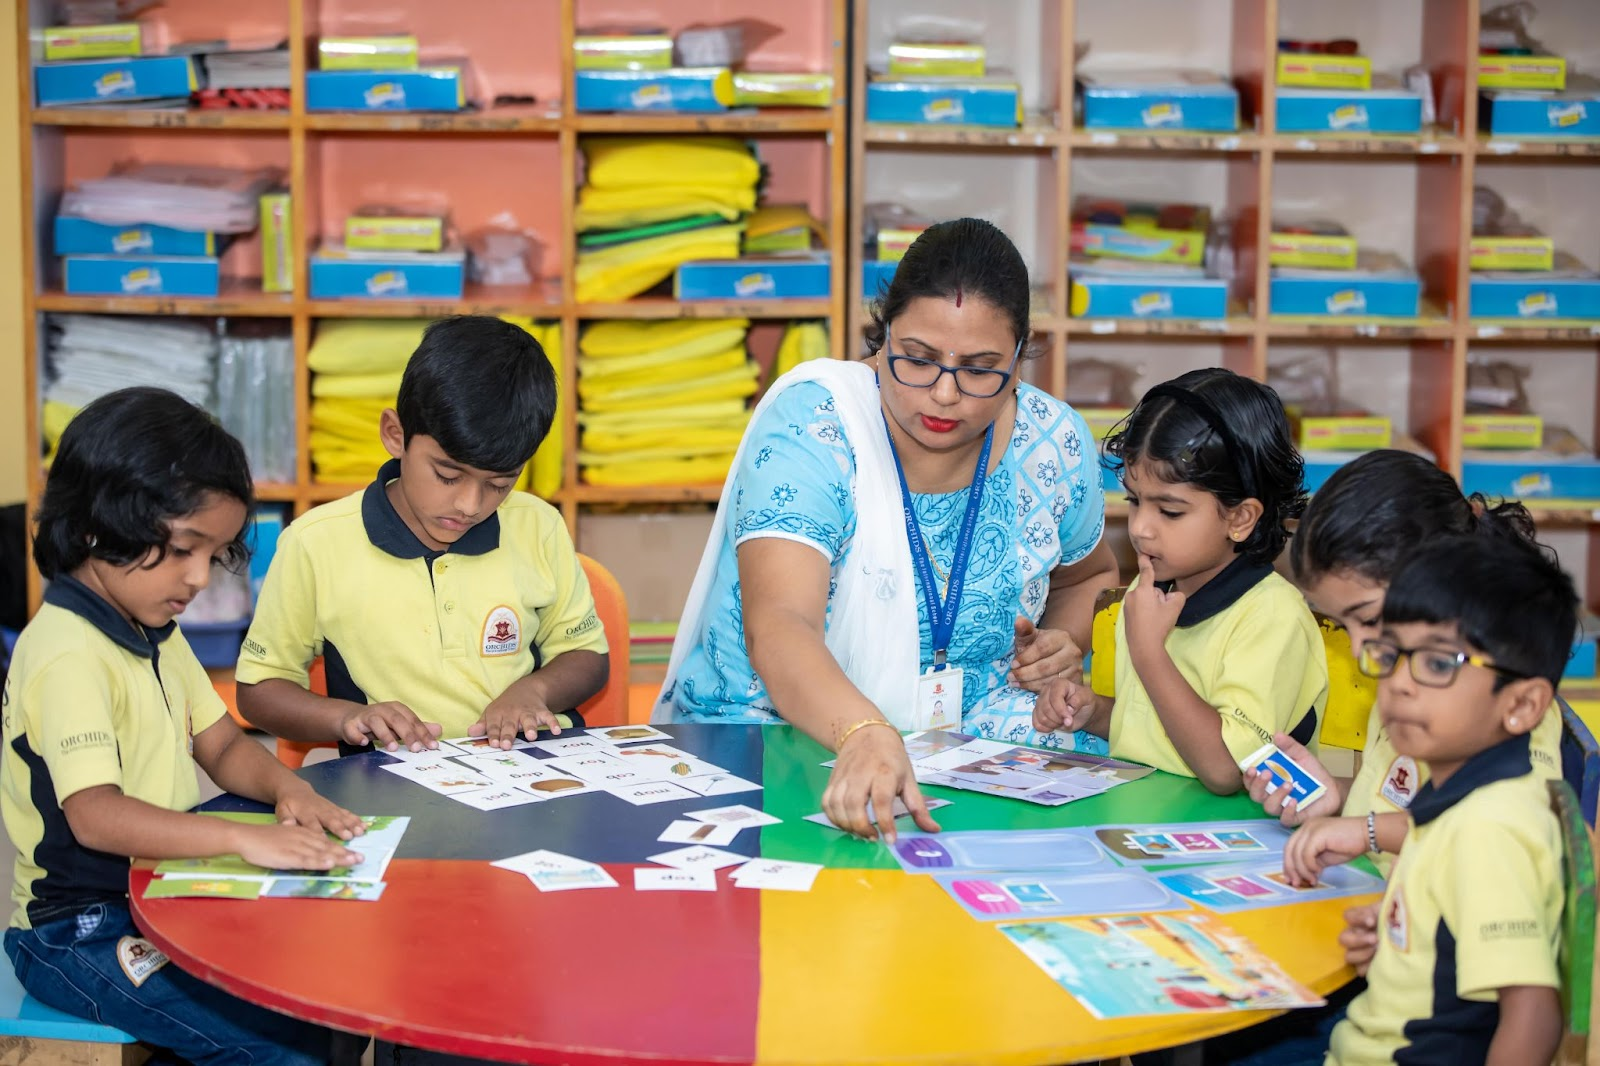 extracurricular activities conducted at Orchids after-school